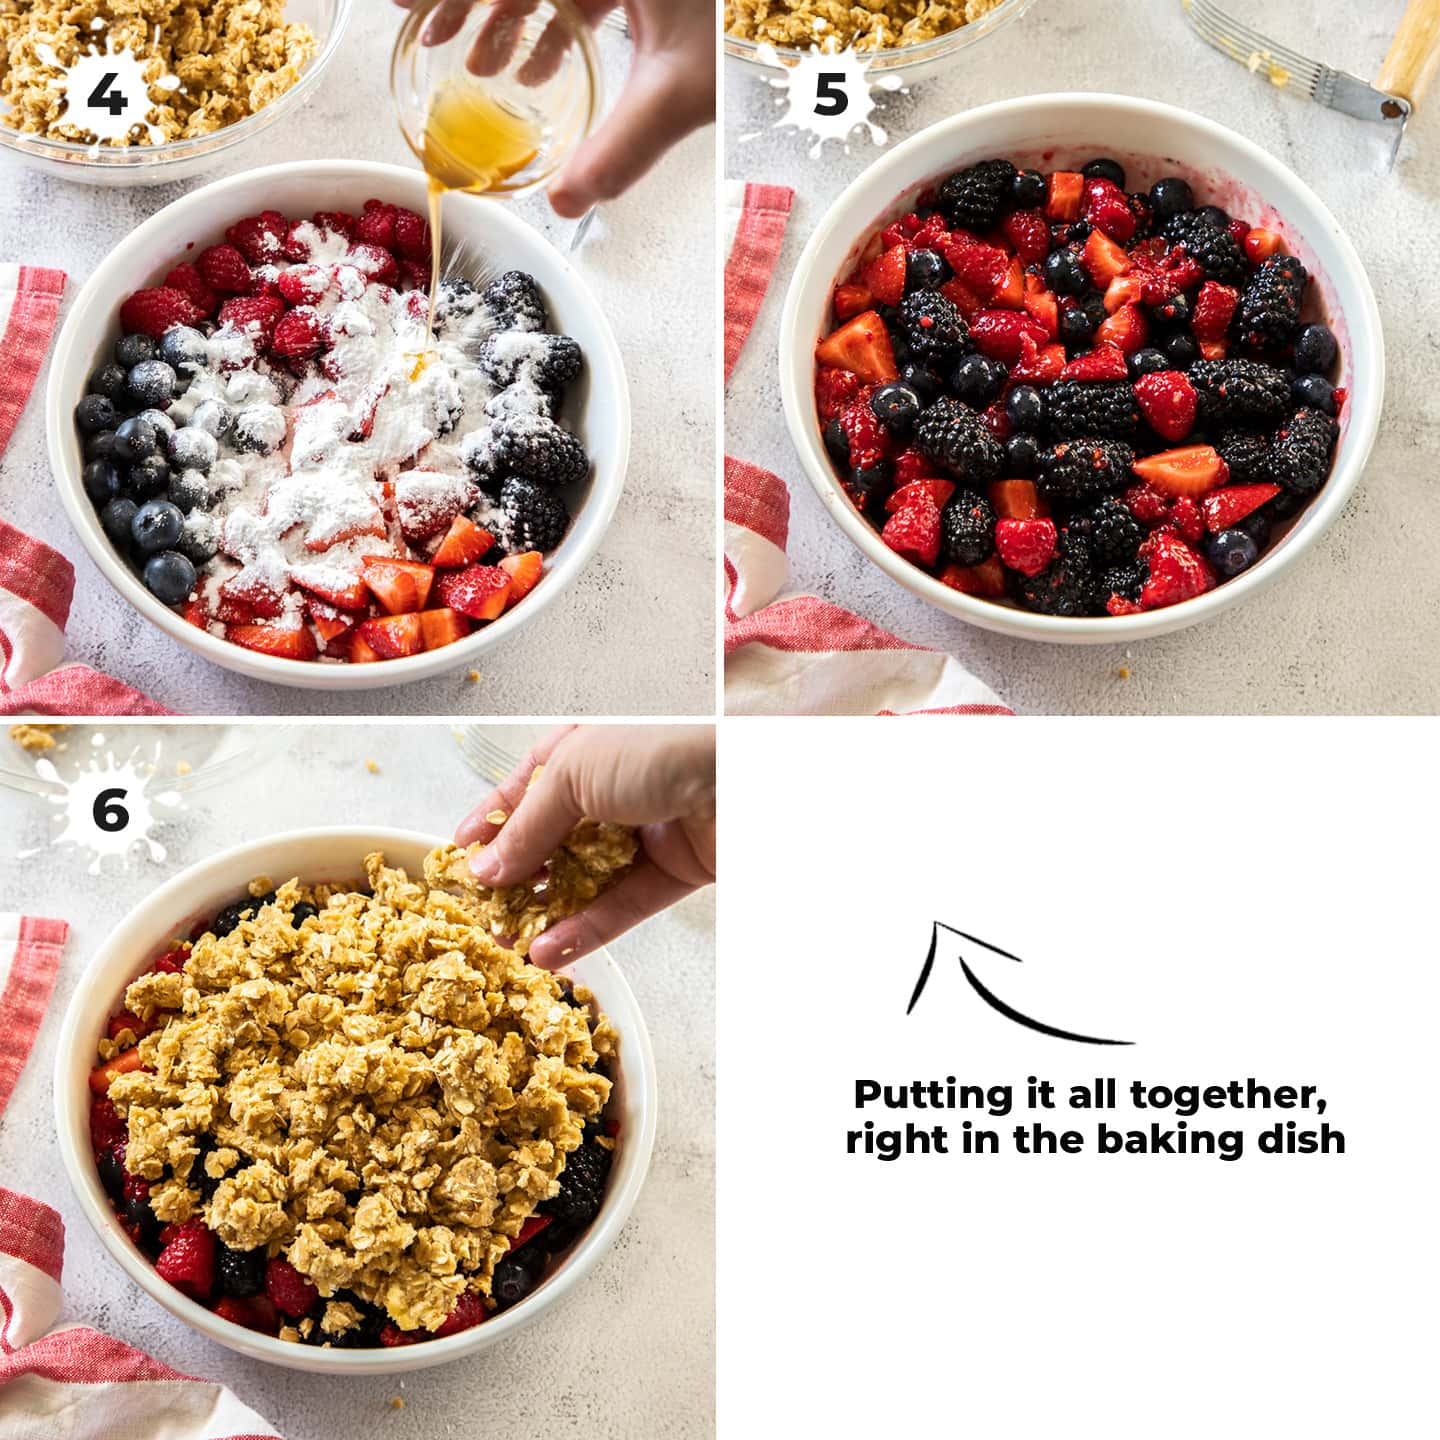 3 images showing assembling the mixed berry crumble in a white pie dish